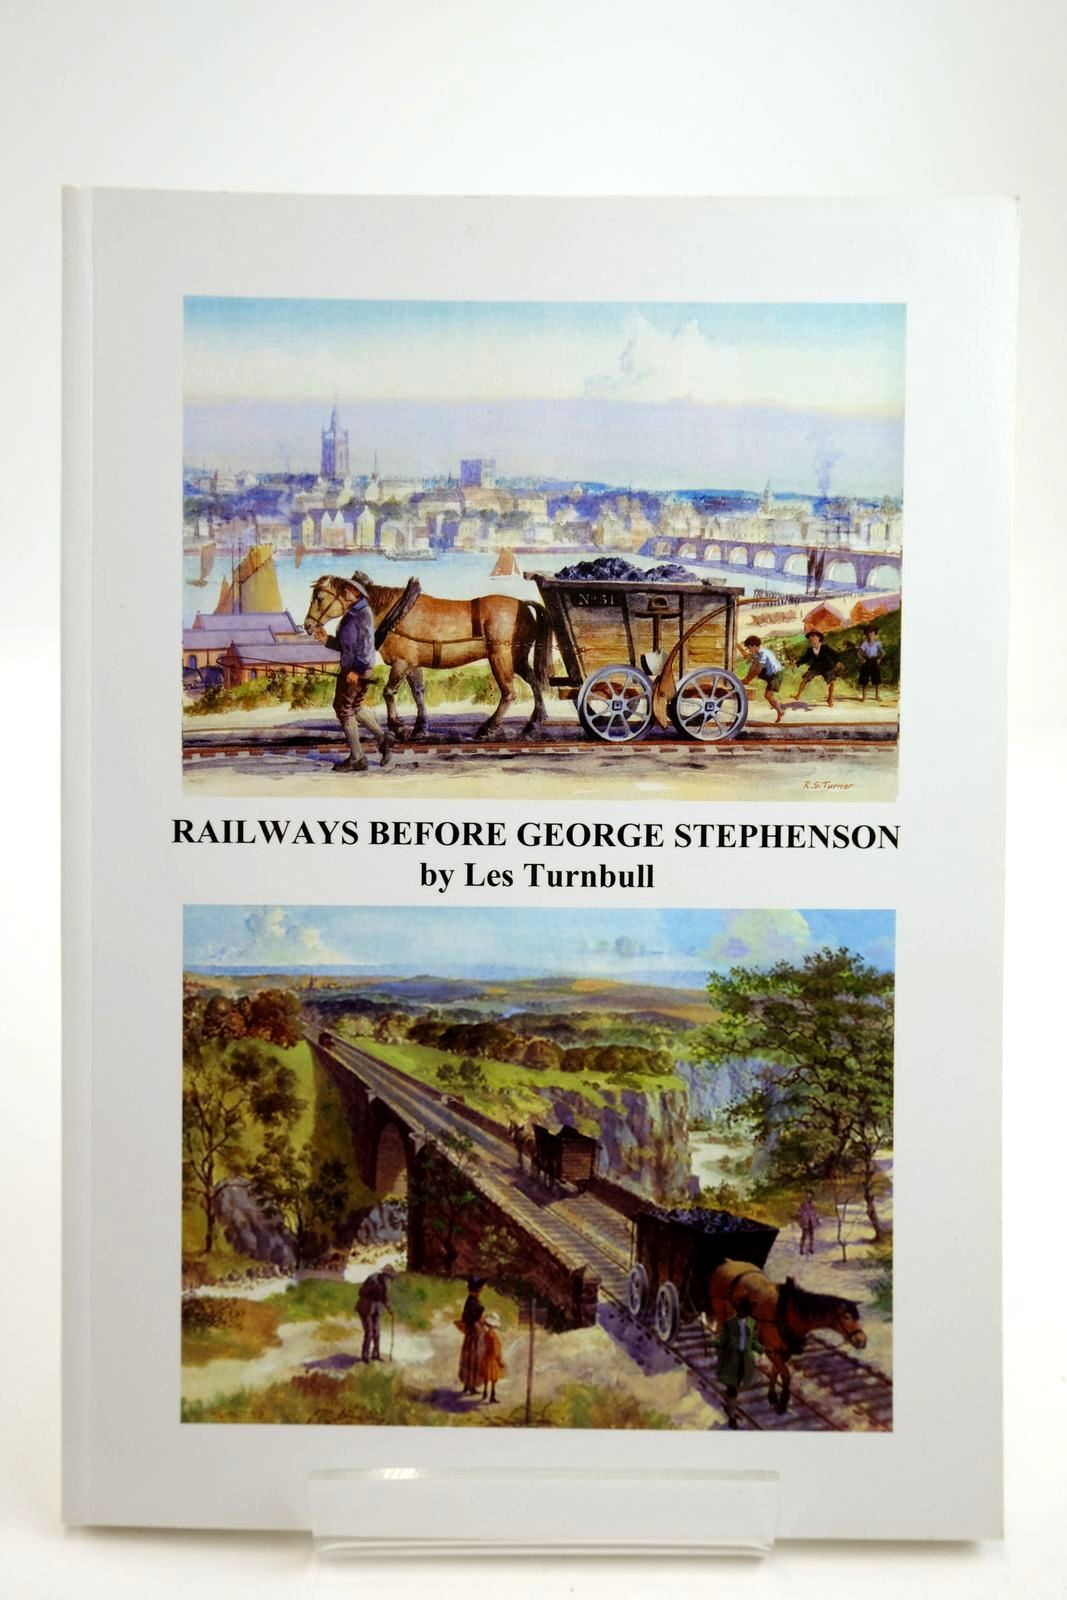 Photo of RAILWAYS BEFORE GEORGE STEPHENSON: A STUDY OF THE WAGGONWAYS IN THE GREAT NORTHERN COALFIELD 1605 - 1830 written by Turnbull, Les published by Chapman Research Publishing (STOCK CODE: 2134059)  for sale by Stella & Rose's Books